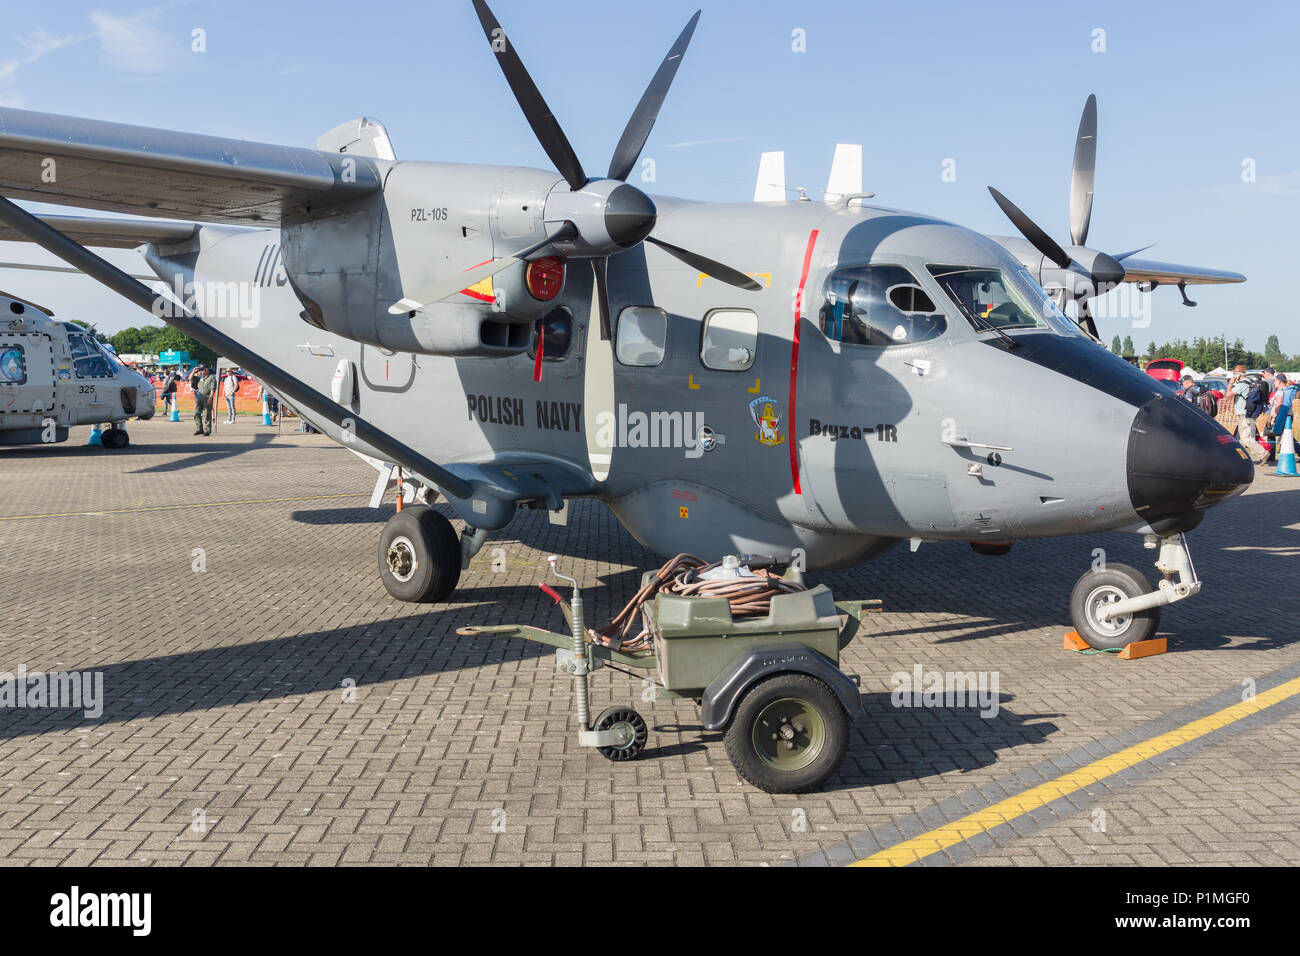 PZL10S Bryza Polish Navy reconnaissance aircraft based on the M28 Skytruck and produced by PZL Mielec - Stock Image